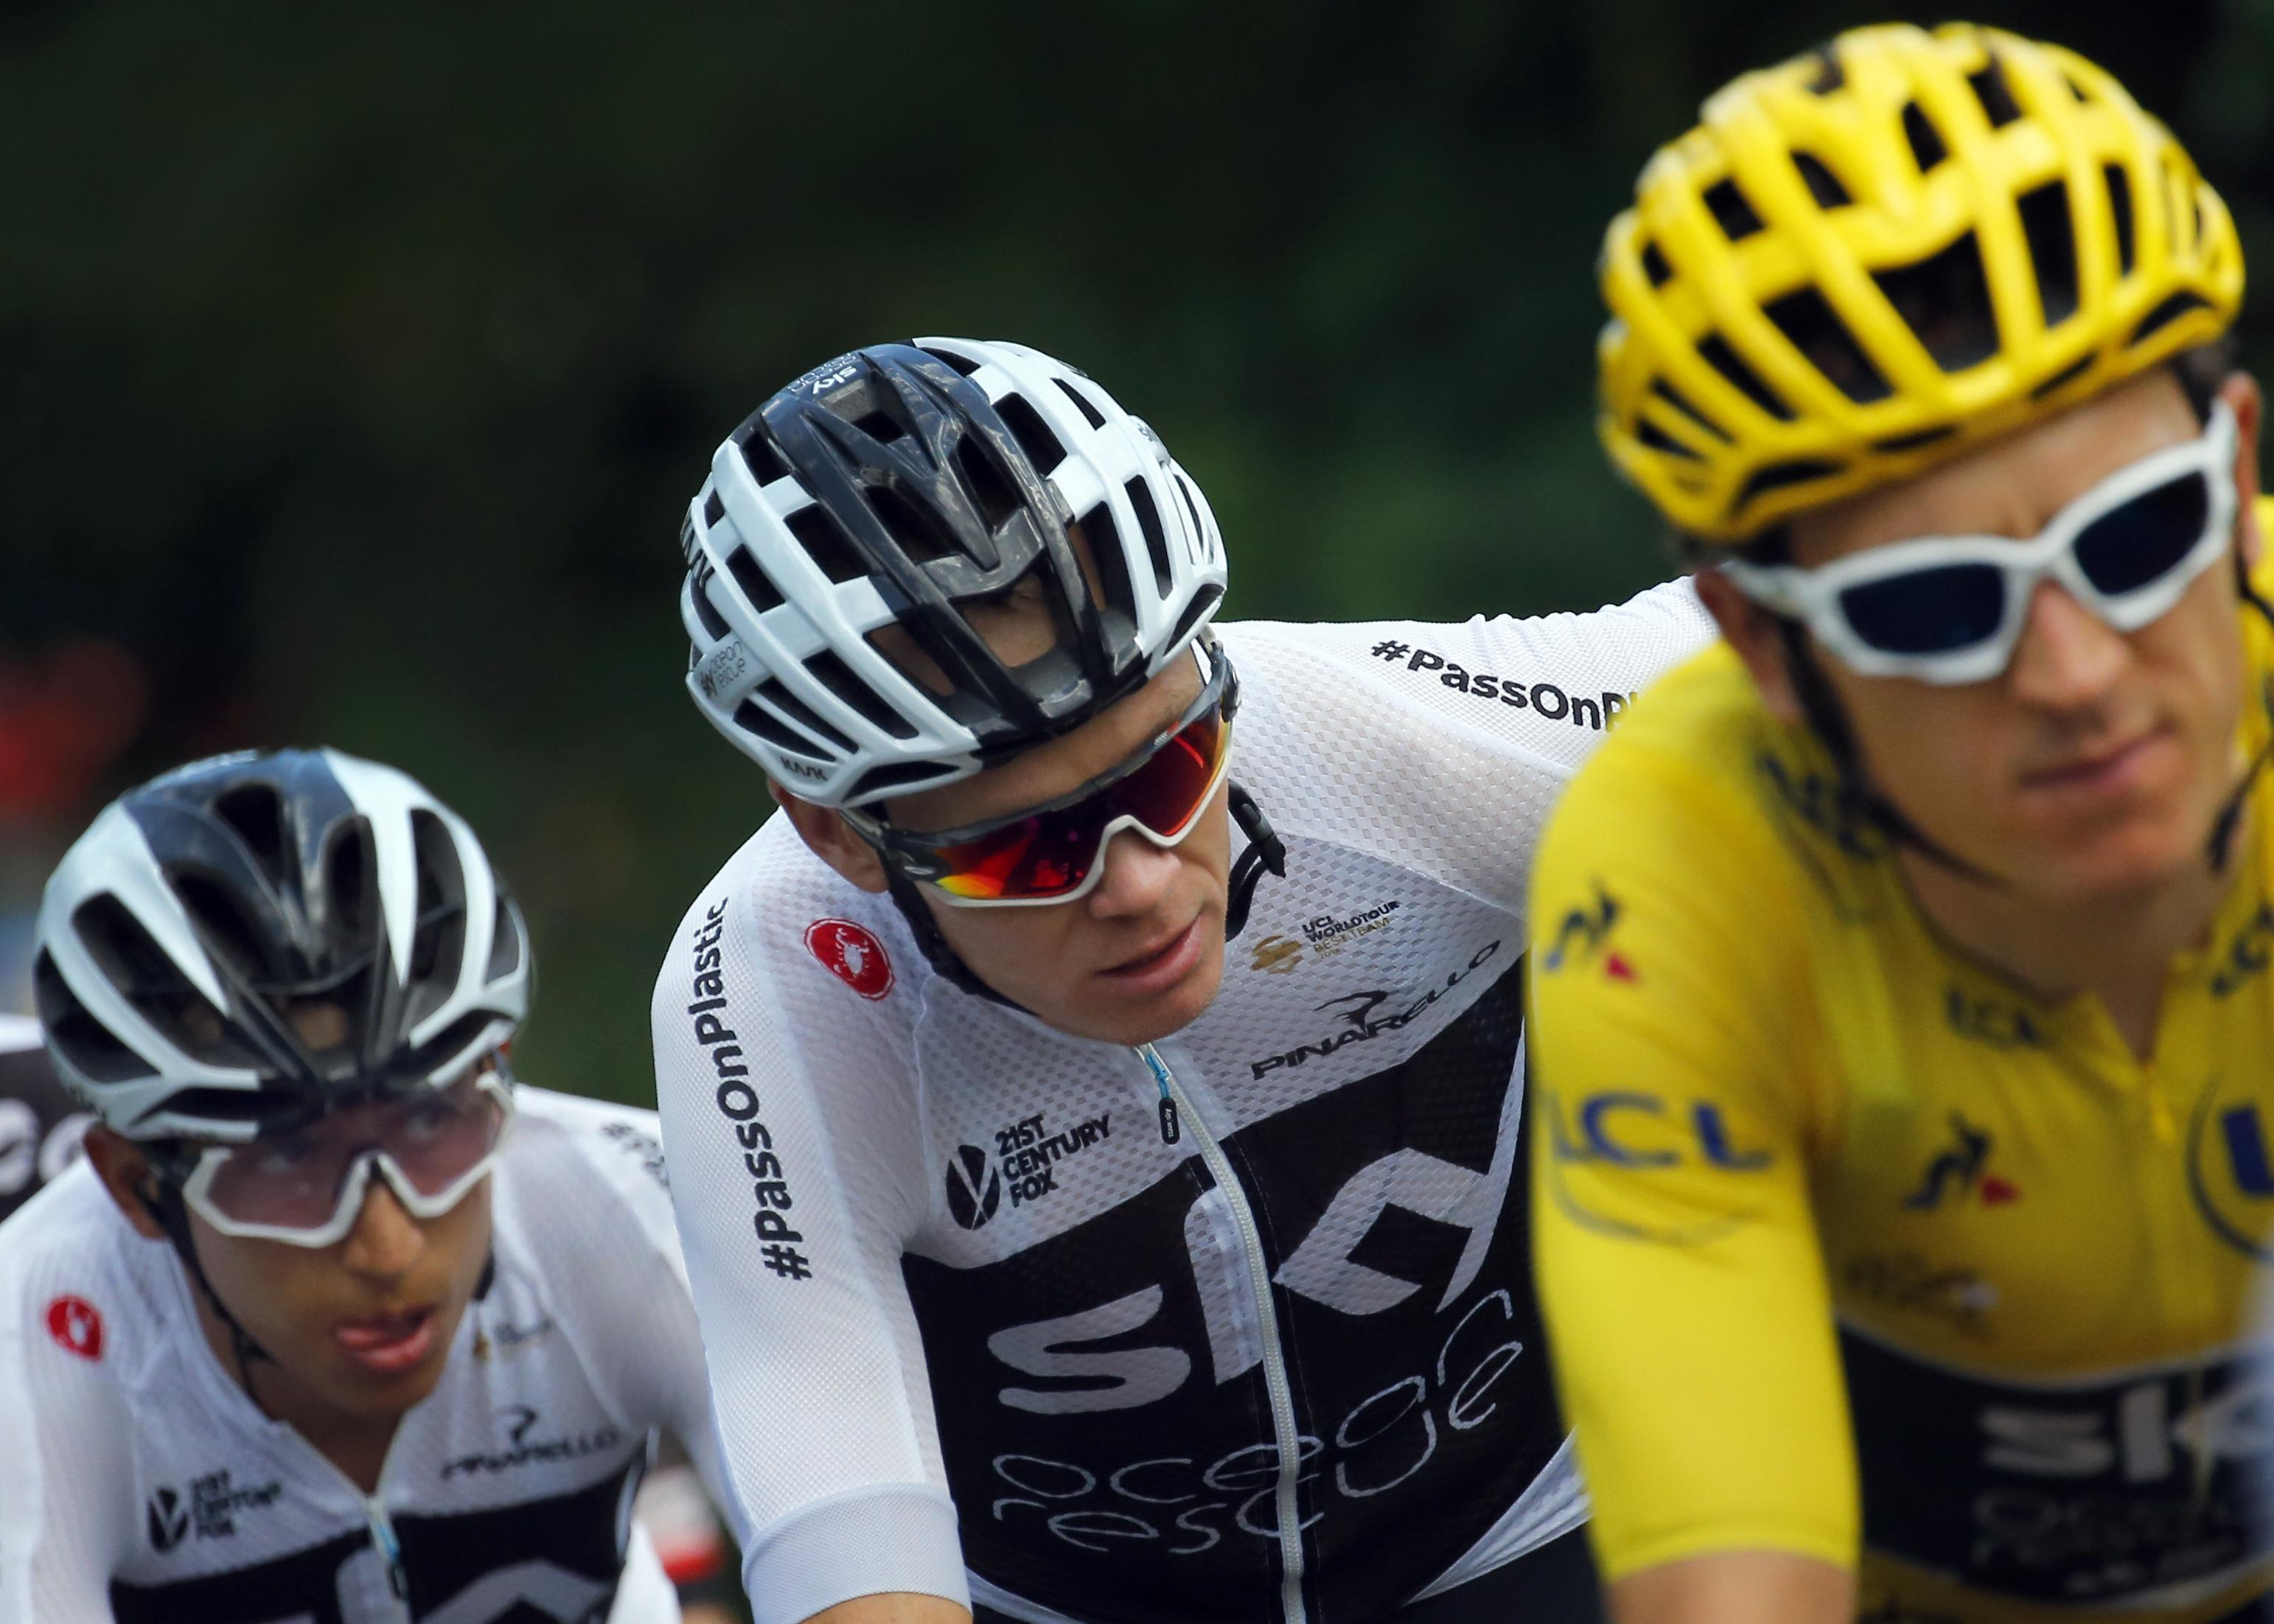 Wiggins even admitted he had sympathy for former team-mate Froome, centre, after his inhaler scandal